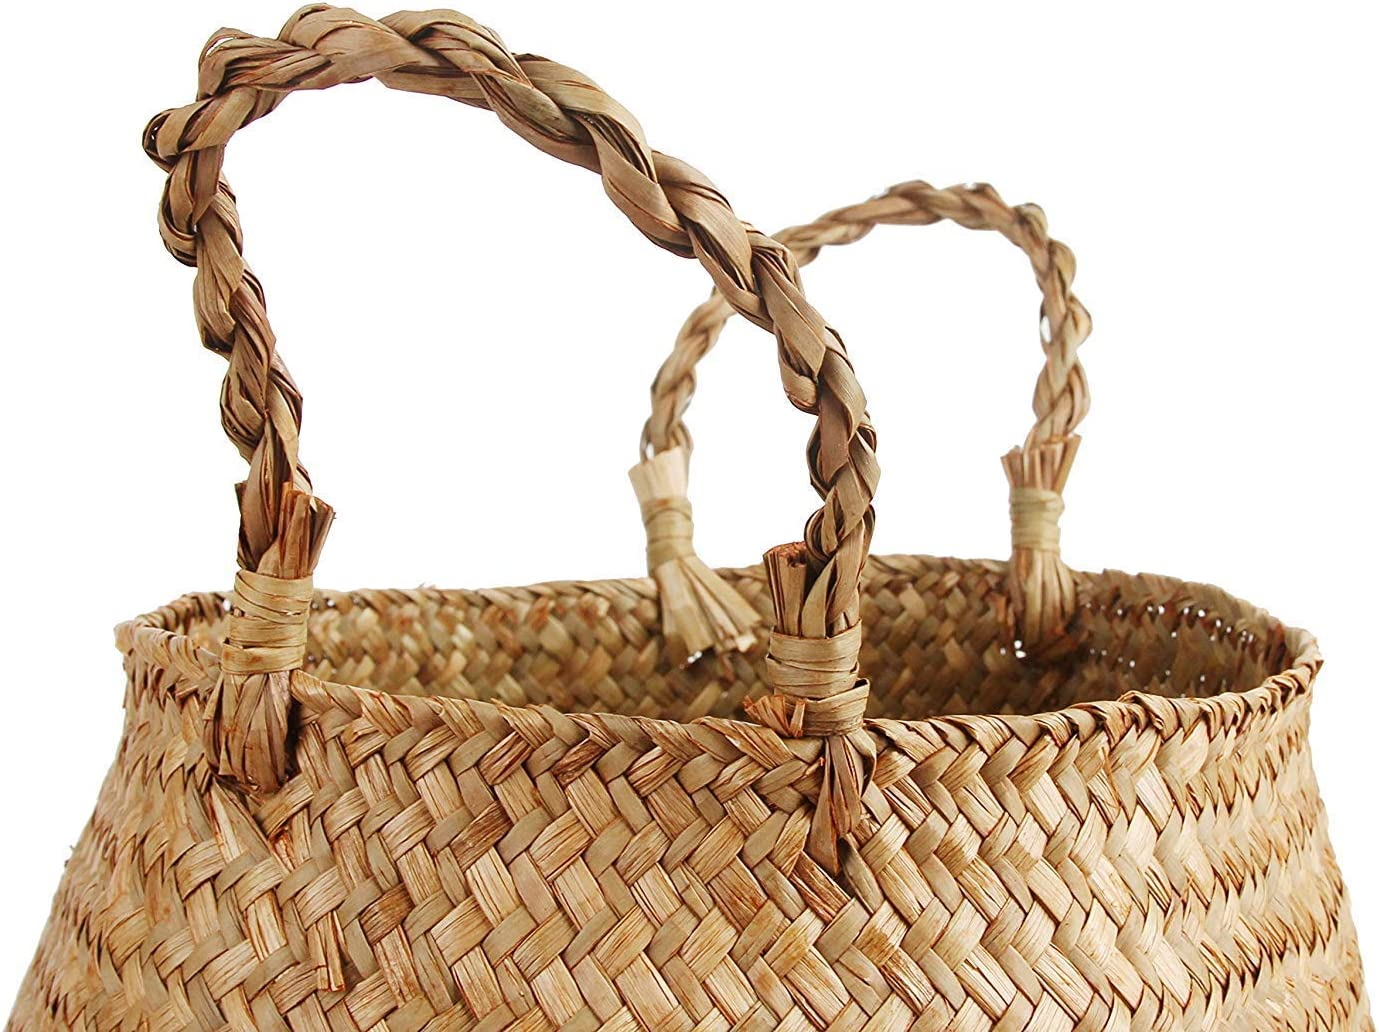 BlueMake Woven Seagrass Belly Basket Set of 2 for Storage Plant Pot Basket and Laundry Picnic and Grocery Basket Medium+Large, Original